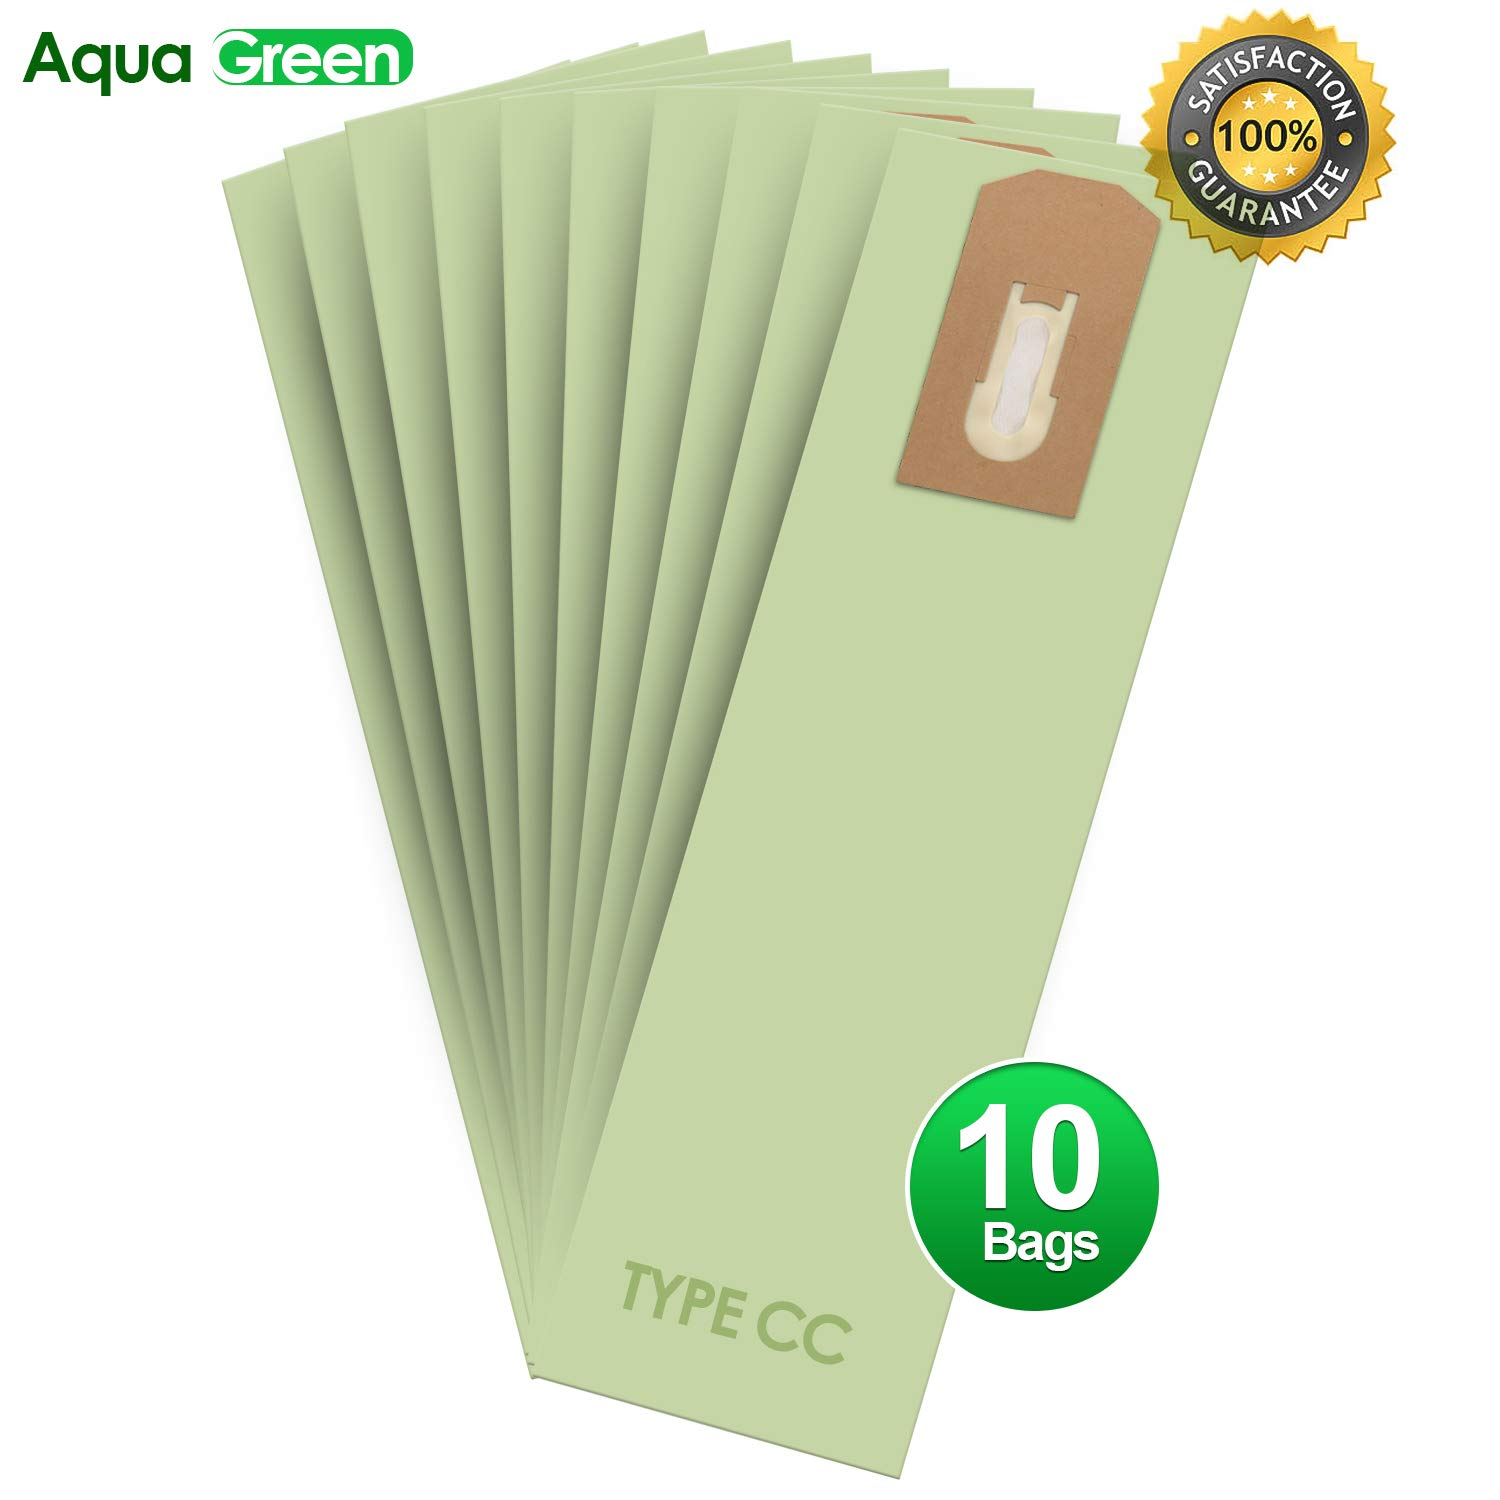 ArtMuseKitsMikash Aqua Green Replacement for Oreck XL Type CC Upright Vacuum Cleaner Bags - Oreck Part # CCPK8DW (10 Pack)